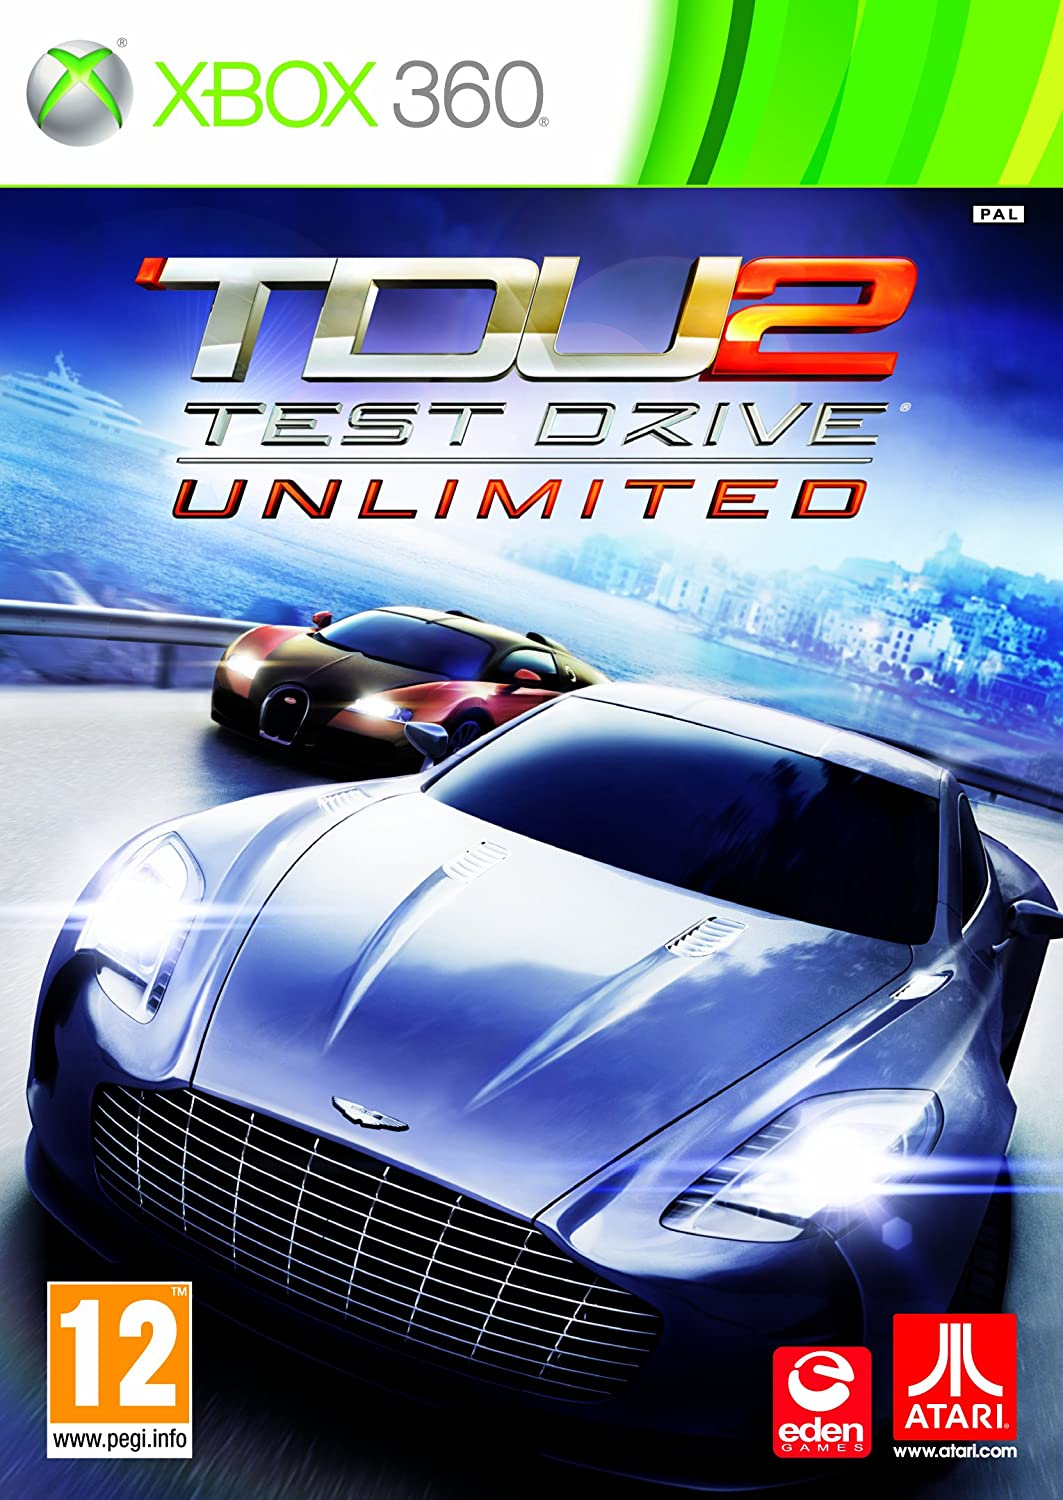 Test Drive Unlimited 2 Xbox Namco Bandai Dallas Mall by 360 Max 65% OFF